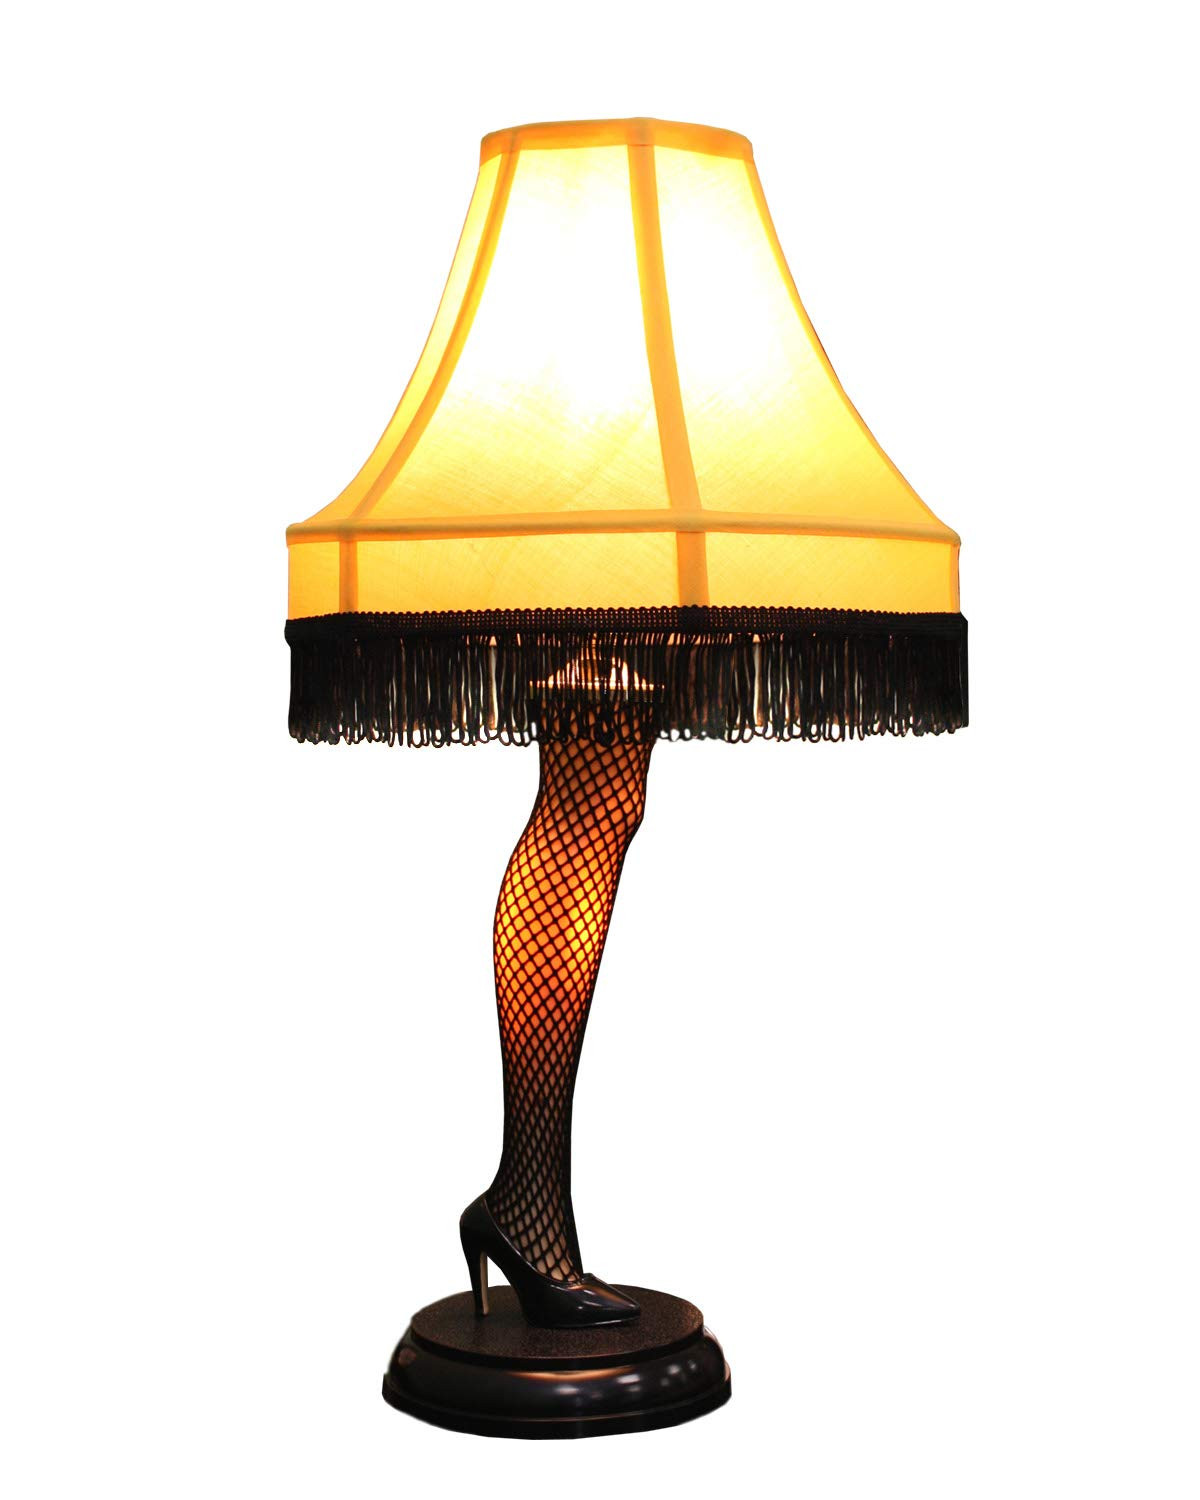 Christmas Story Lamp Amazon Fresh A Christmas Story 20 Inch Leg Lamp Prop Replica by Neca